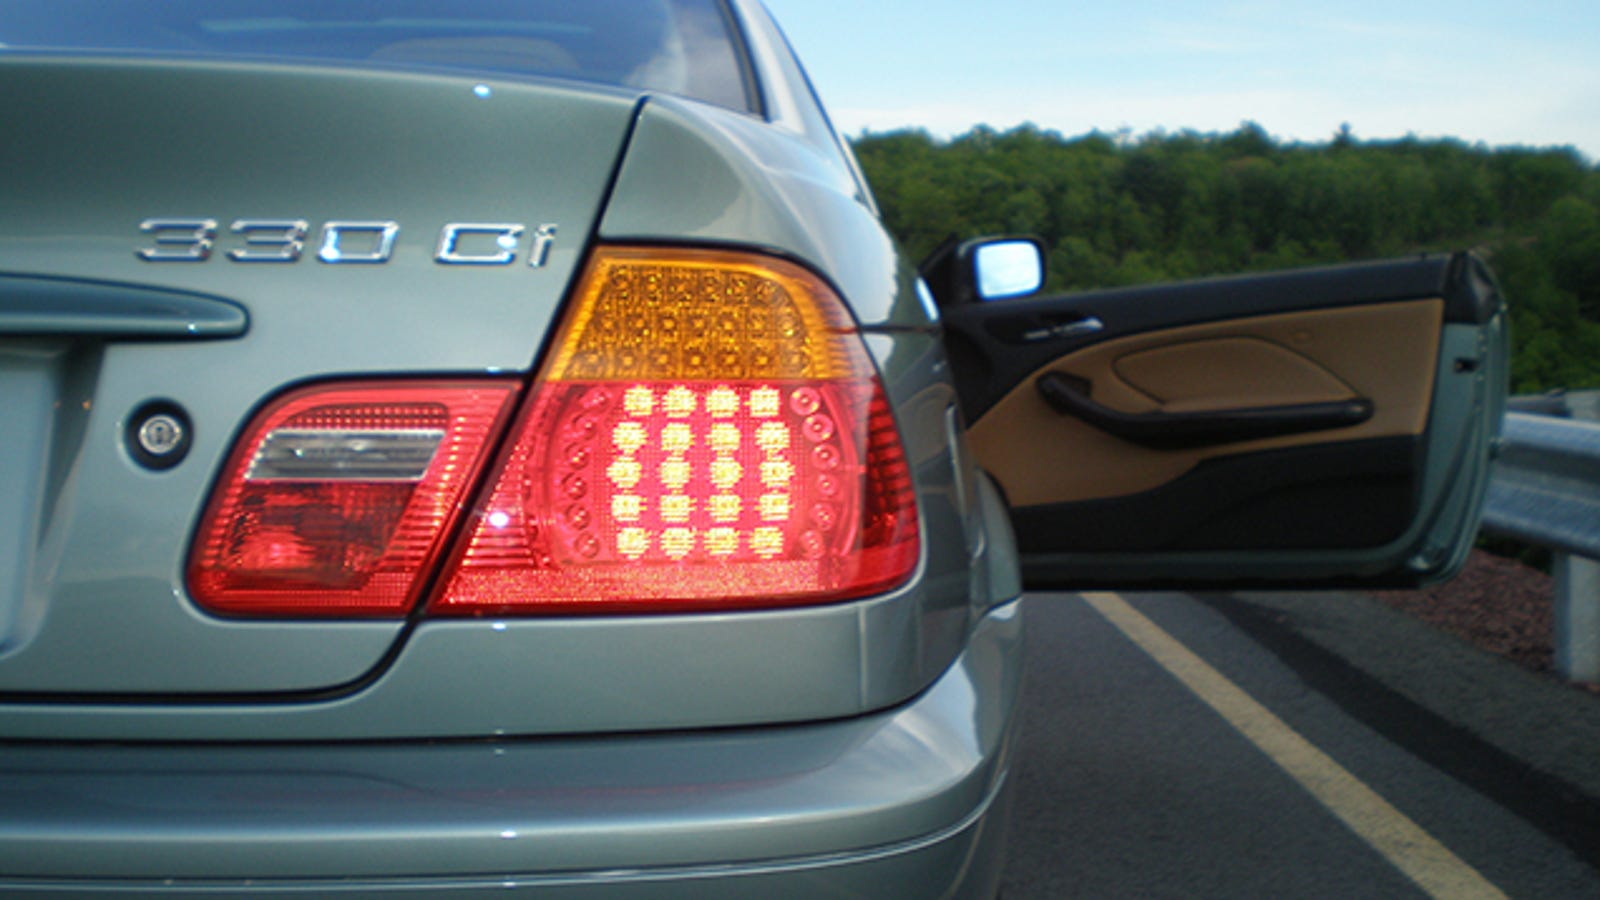 When Your Turn Signal Indicator Blinks Rapidly, Change Your Bulb